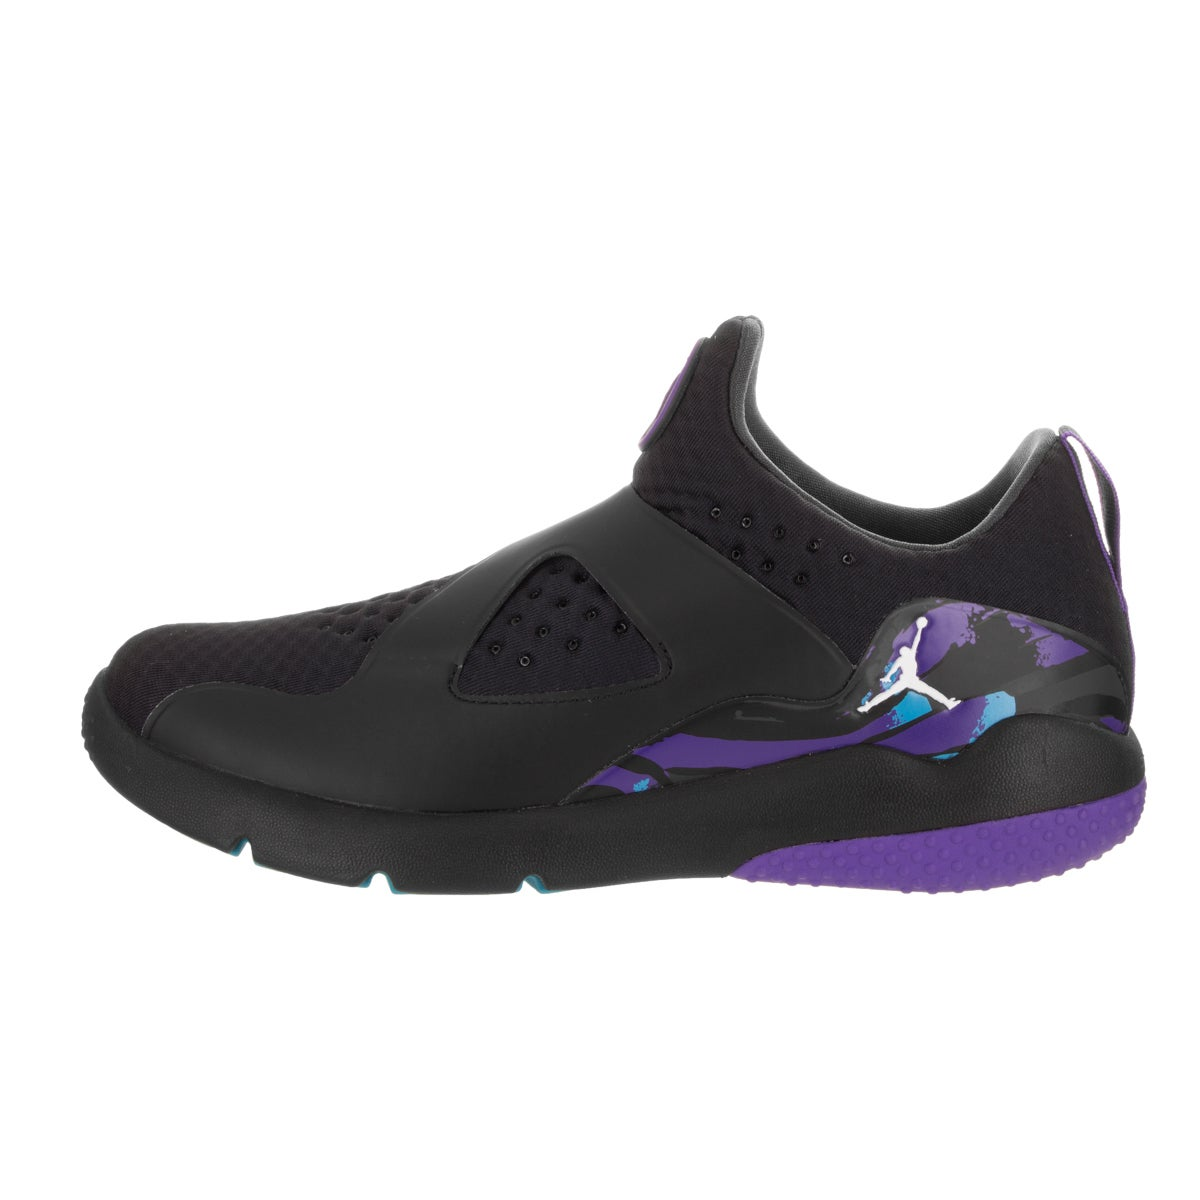 5203814db40aca Shop Nike Jordan Men s Jordan Trainer Essential Training Shoe - Free  Shipping Today - Overstock - 16850355